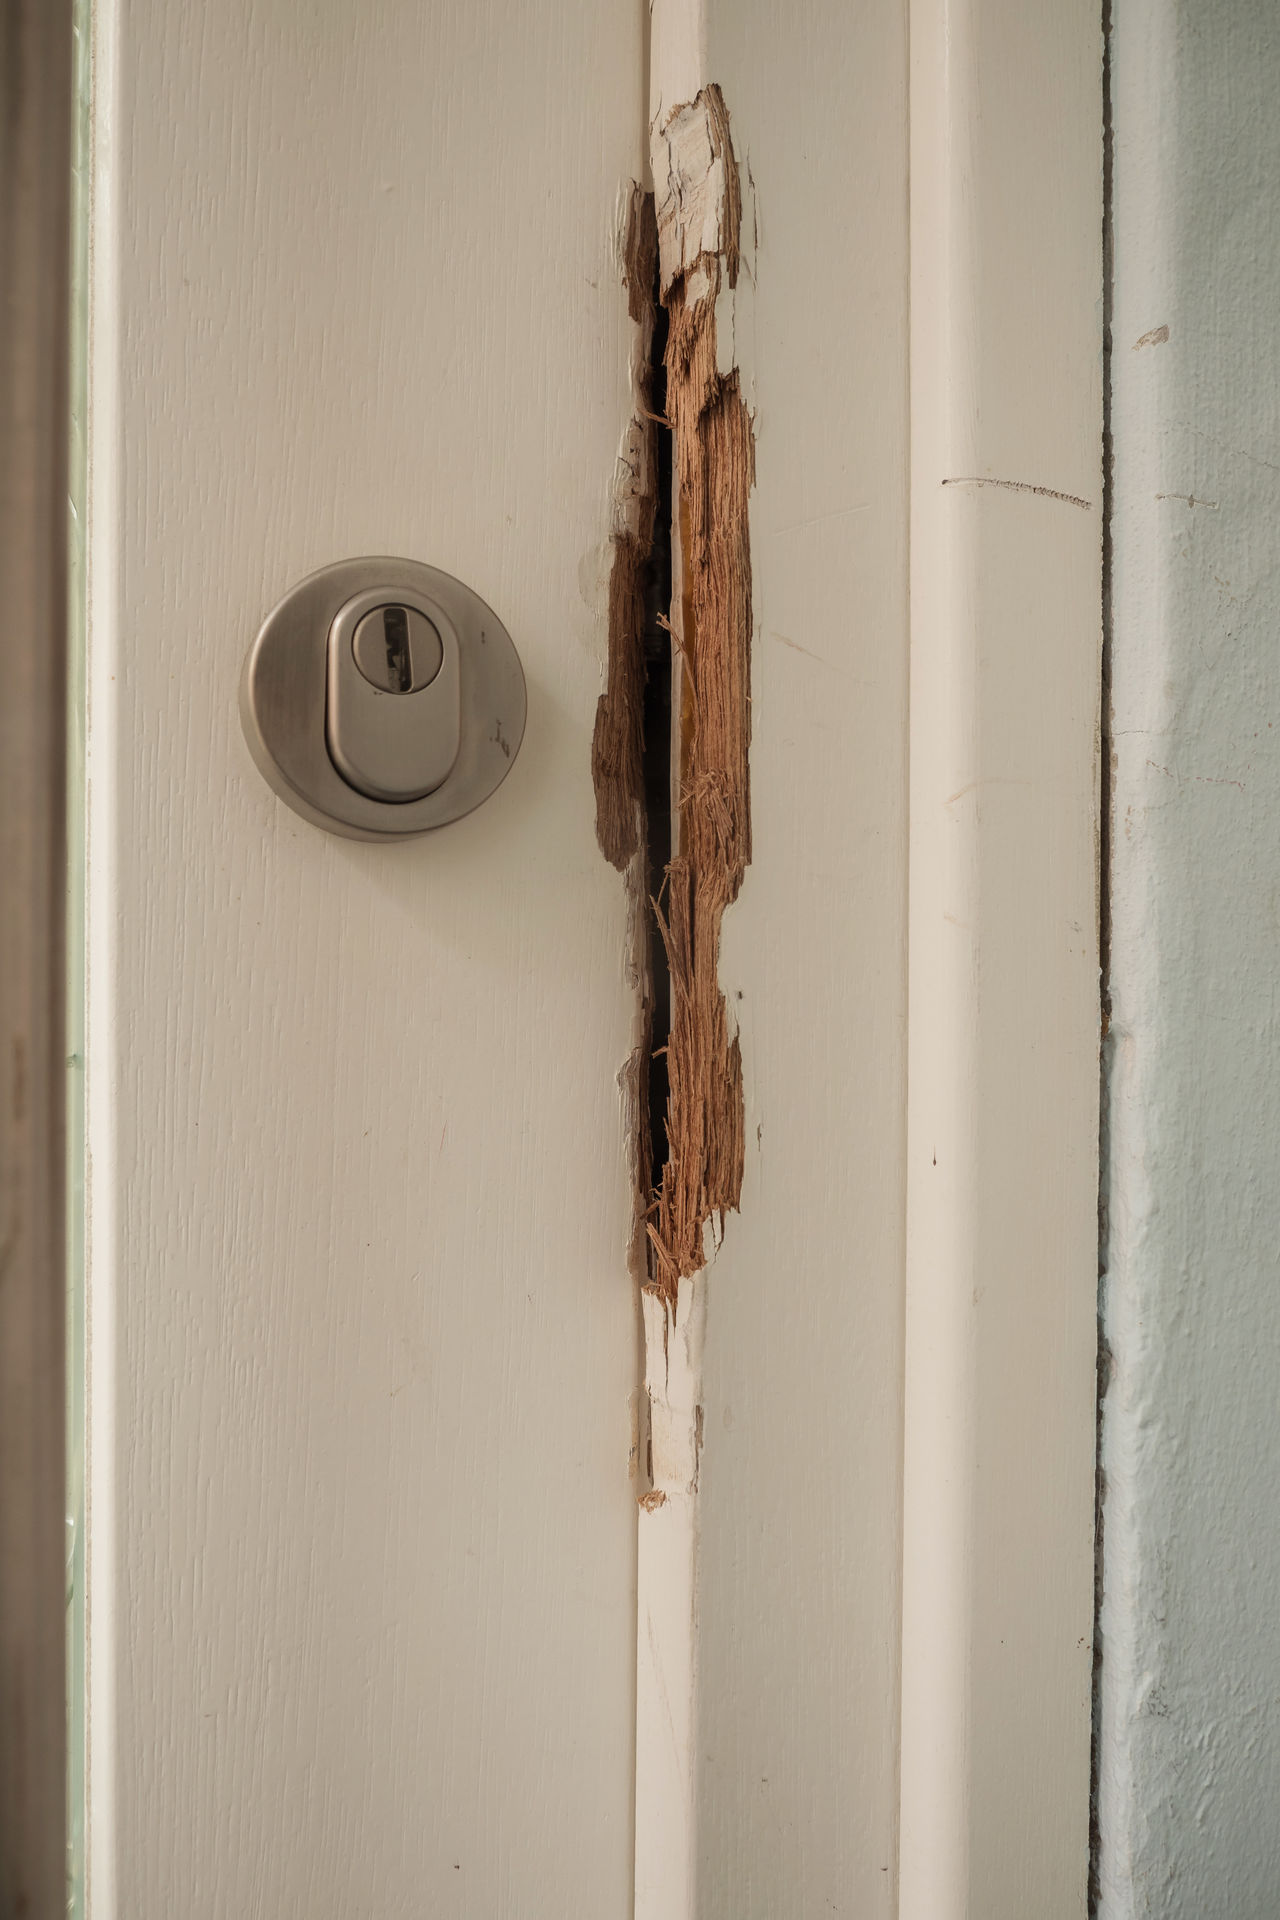 Damaged door frame after a burglary Breaking Security Architecture Broken Built Structure Burglary Close-up Damaged Day Door Housebraking Indoors  Lock No People Raid Repair White Color Wooden